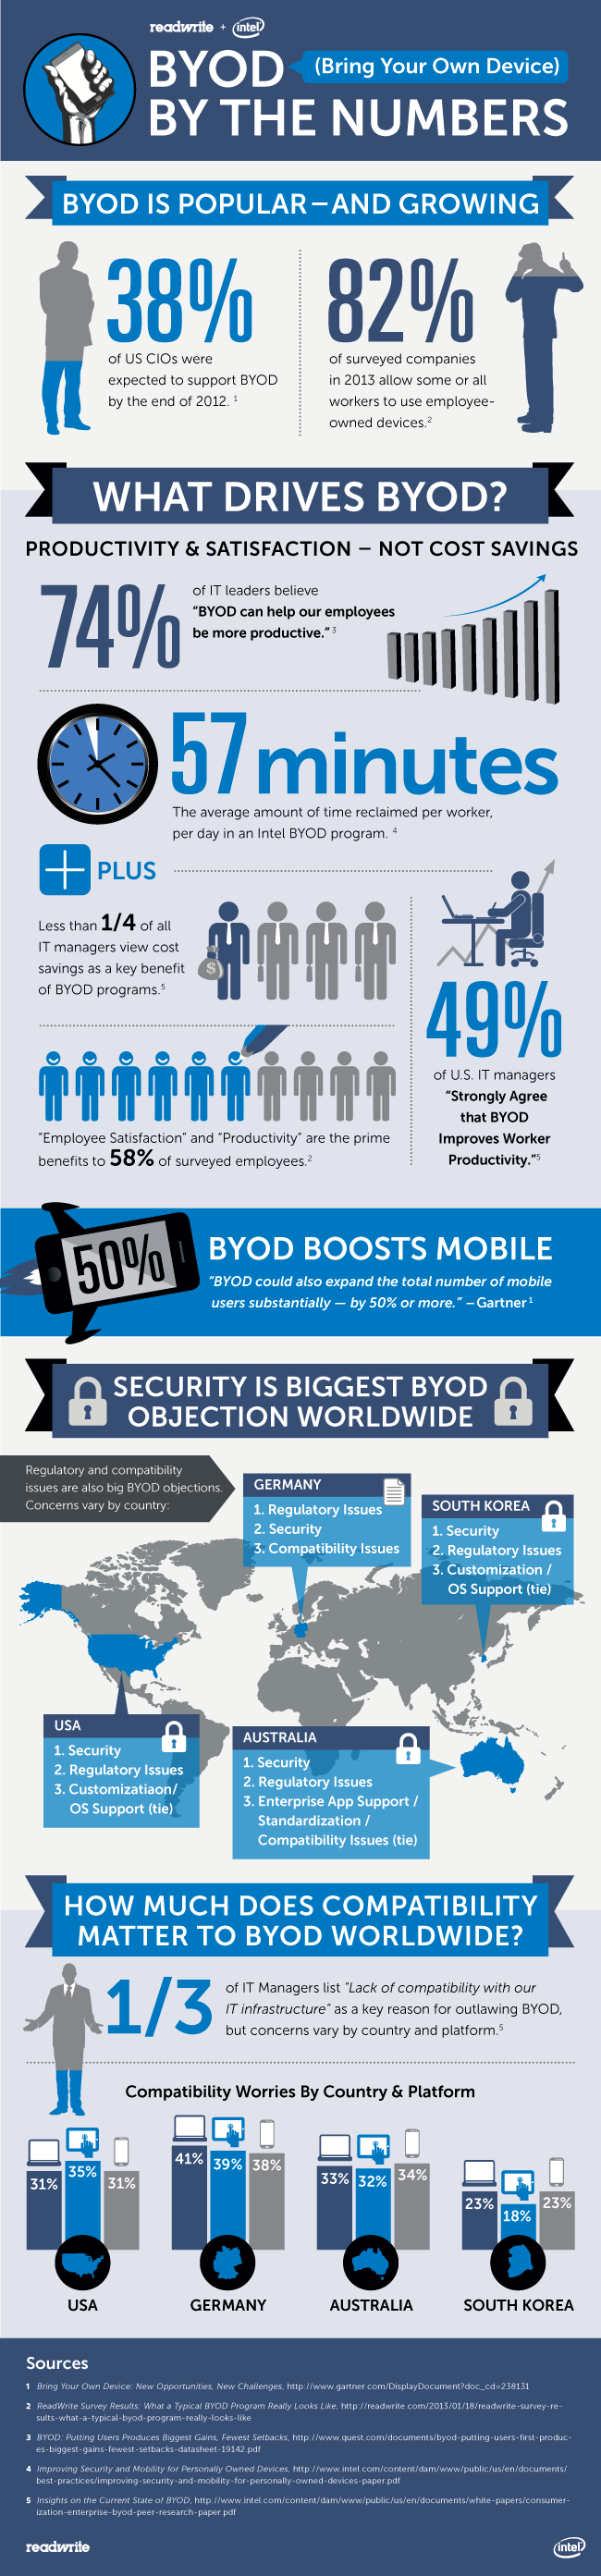 BYOD for small business essential infographic